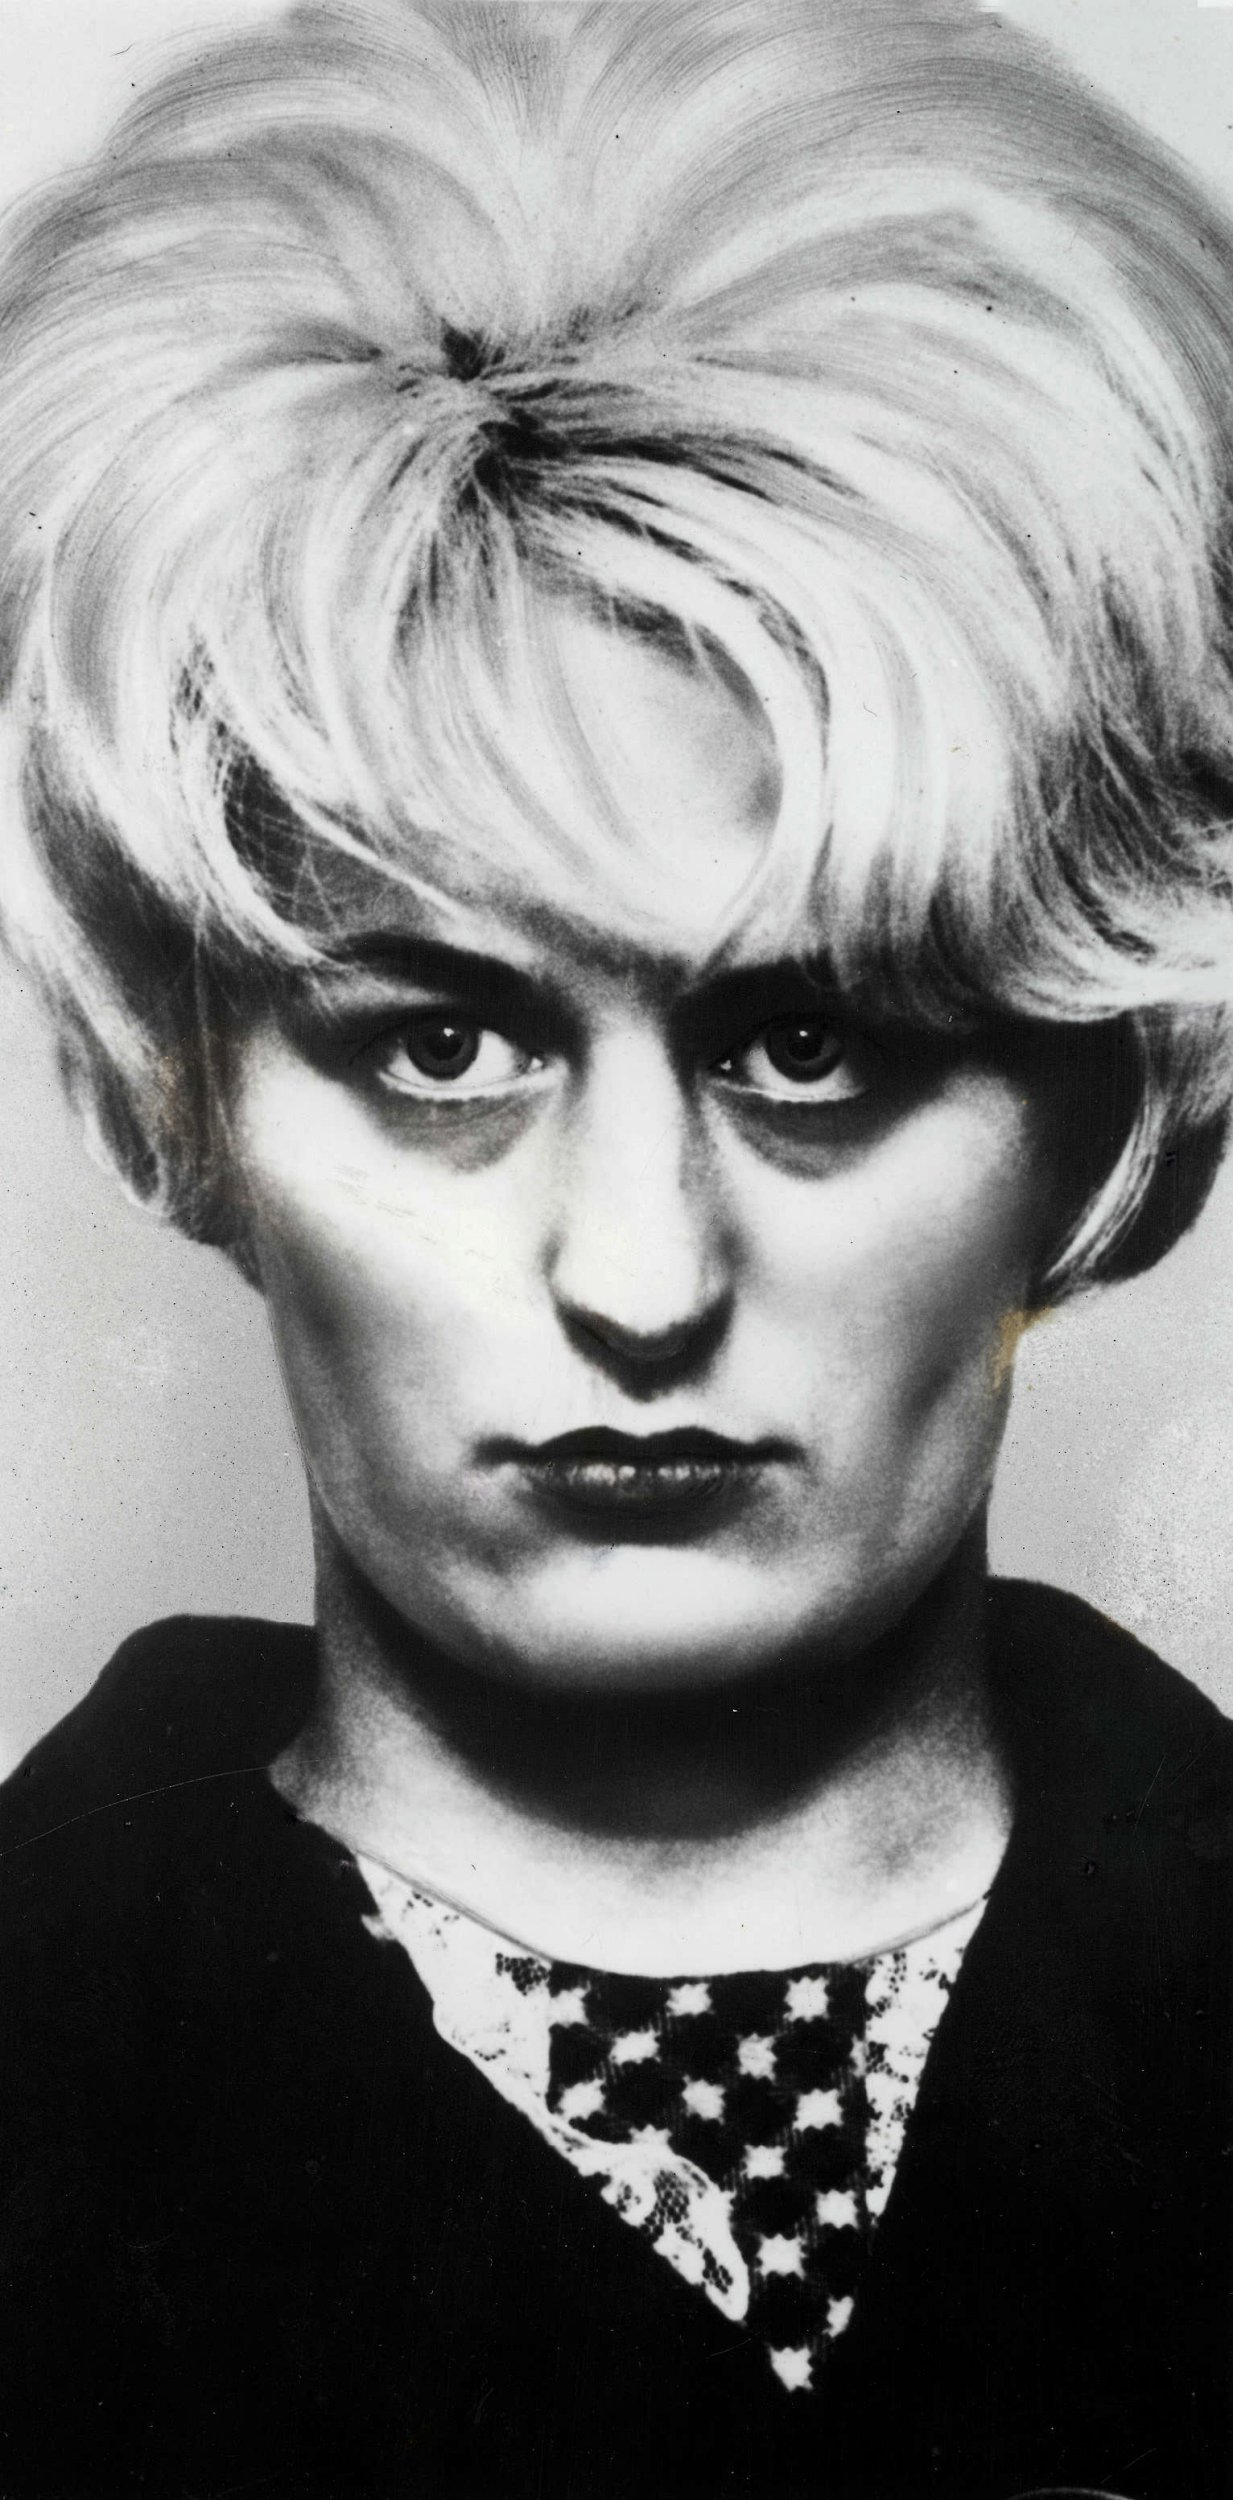 Circa 1966, Police photo-fit of Moors Murderer Myra Hindley who along with accomplice Ian Brady were found guilty of murdering three children (Photo by Bentley Archive/Popperfoto/Getty Images)